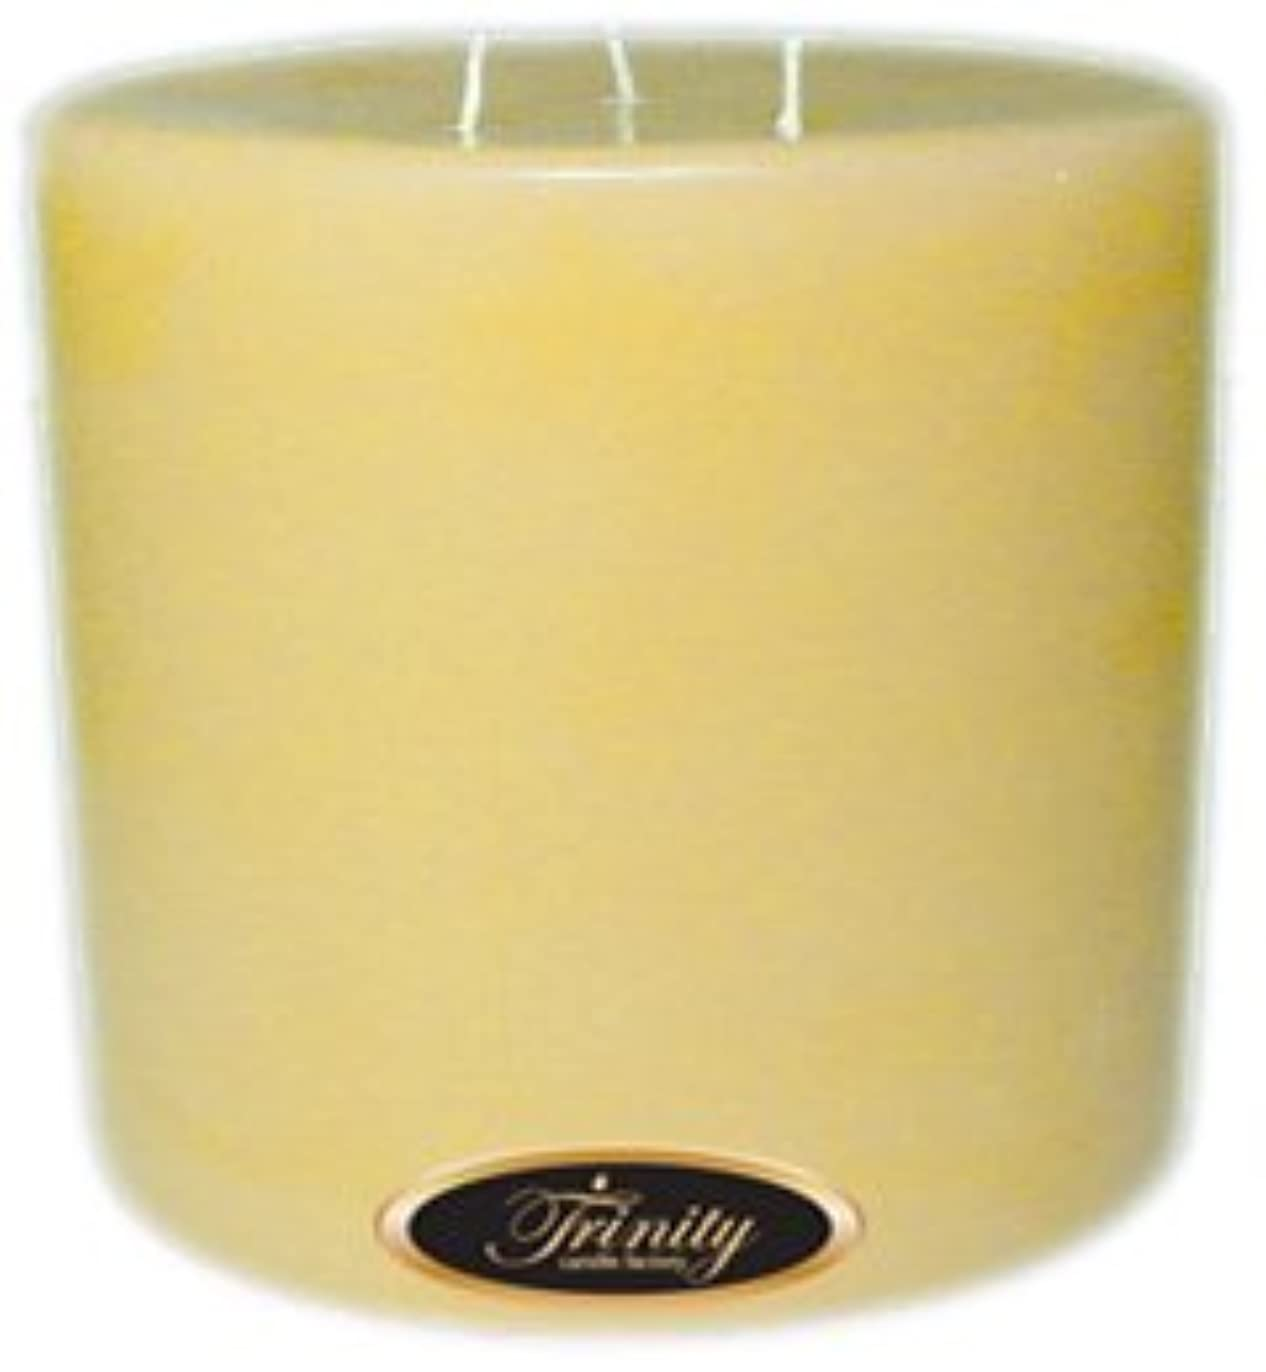 口スキッパー放散するTrinity Candle工場 – Almond Bark – Pillar Candle – 6 x 6